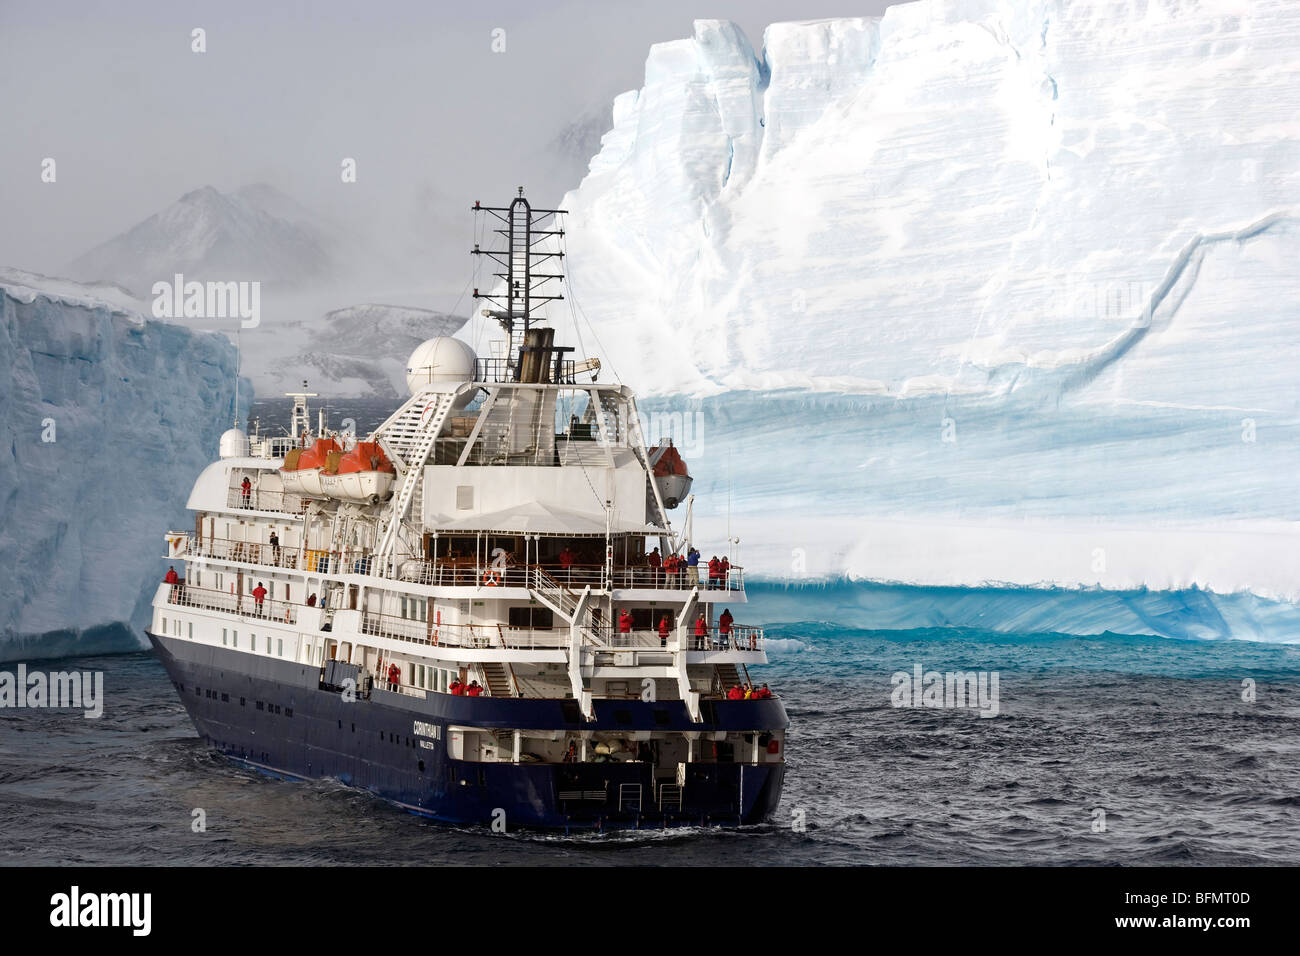 Antarctica, Antarctic Sound and Hope Bay, expedition ship the Corinthian III is dwarfed by the tabular icebergs. - Stock Image